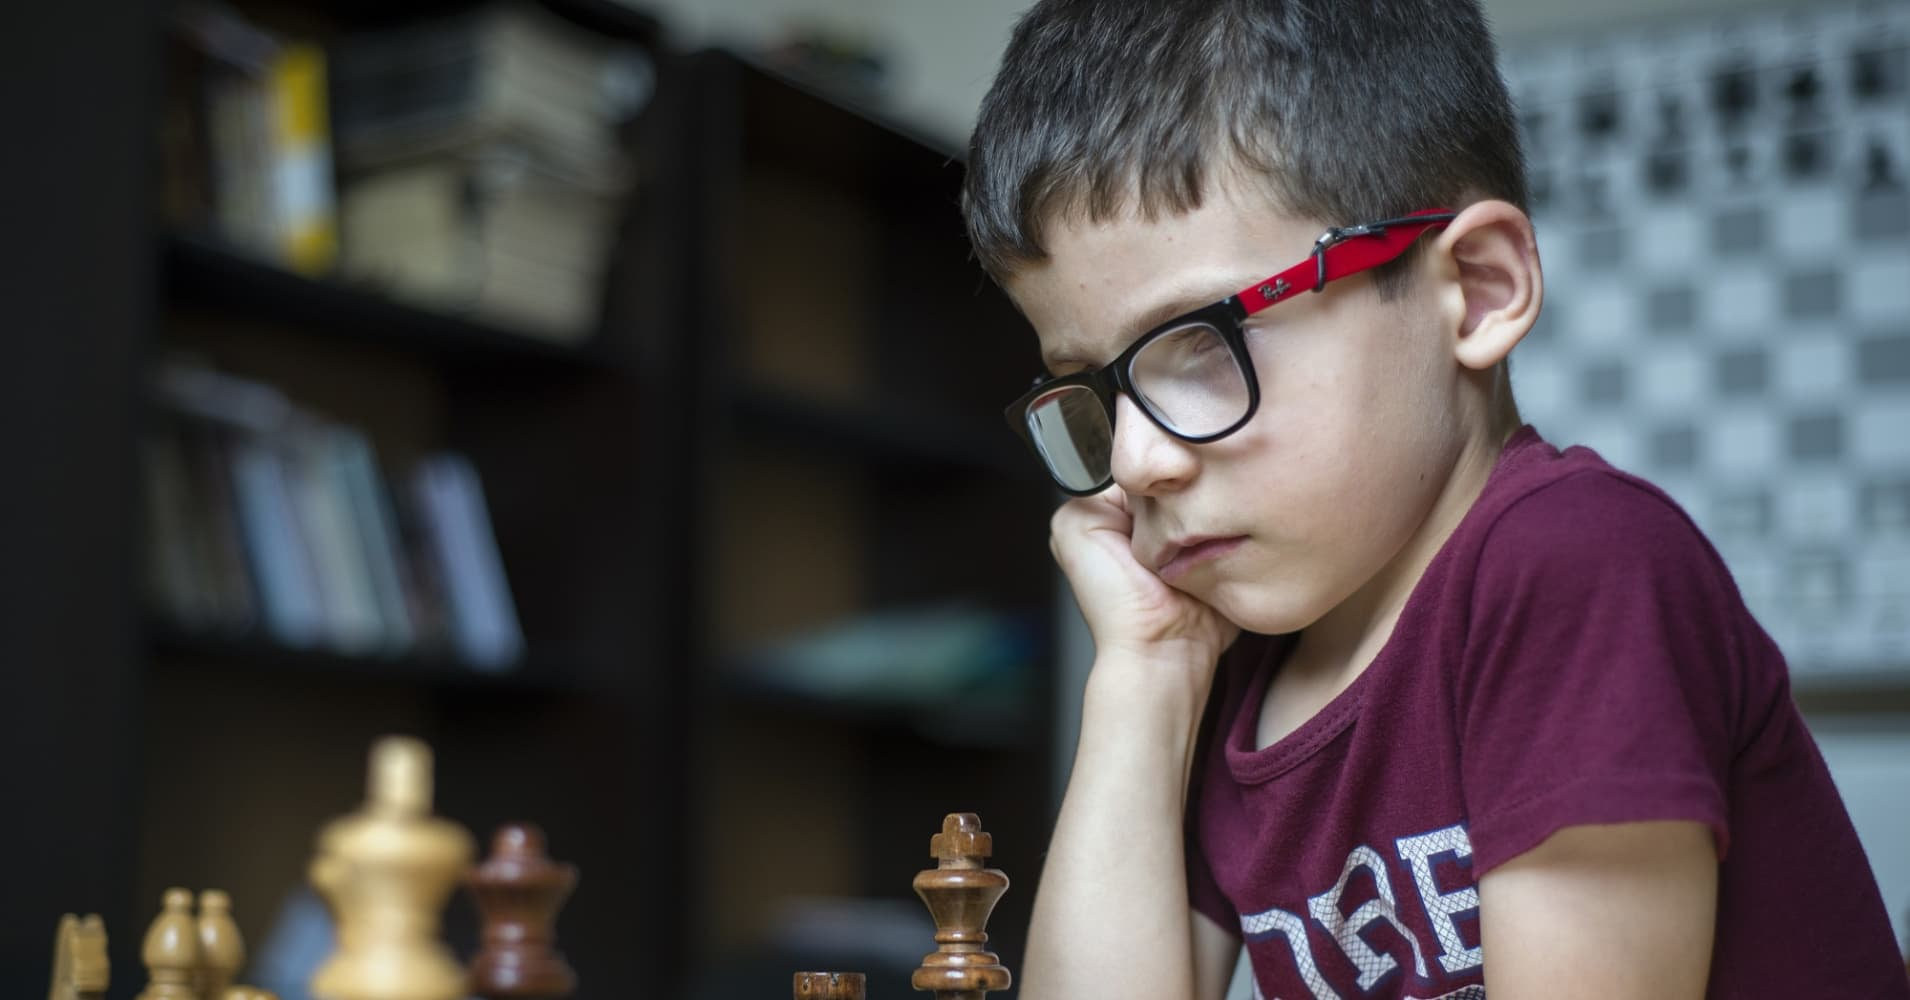 A learner of the Quba Chess School plays chess during a training lesson, Azerbaijan.